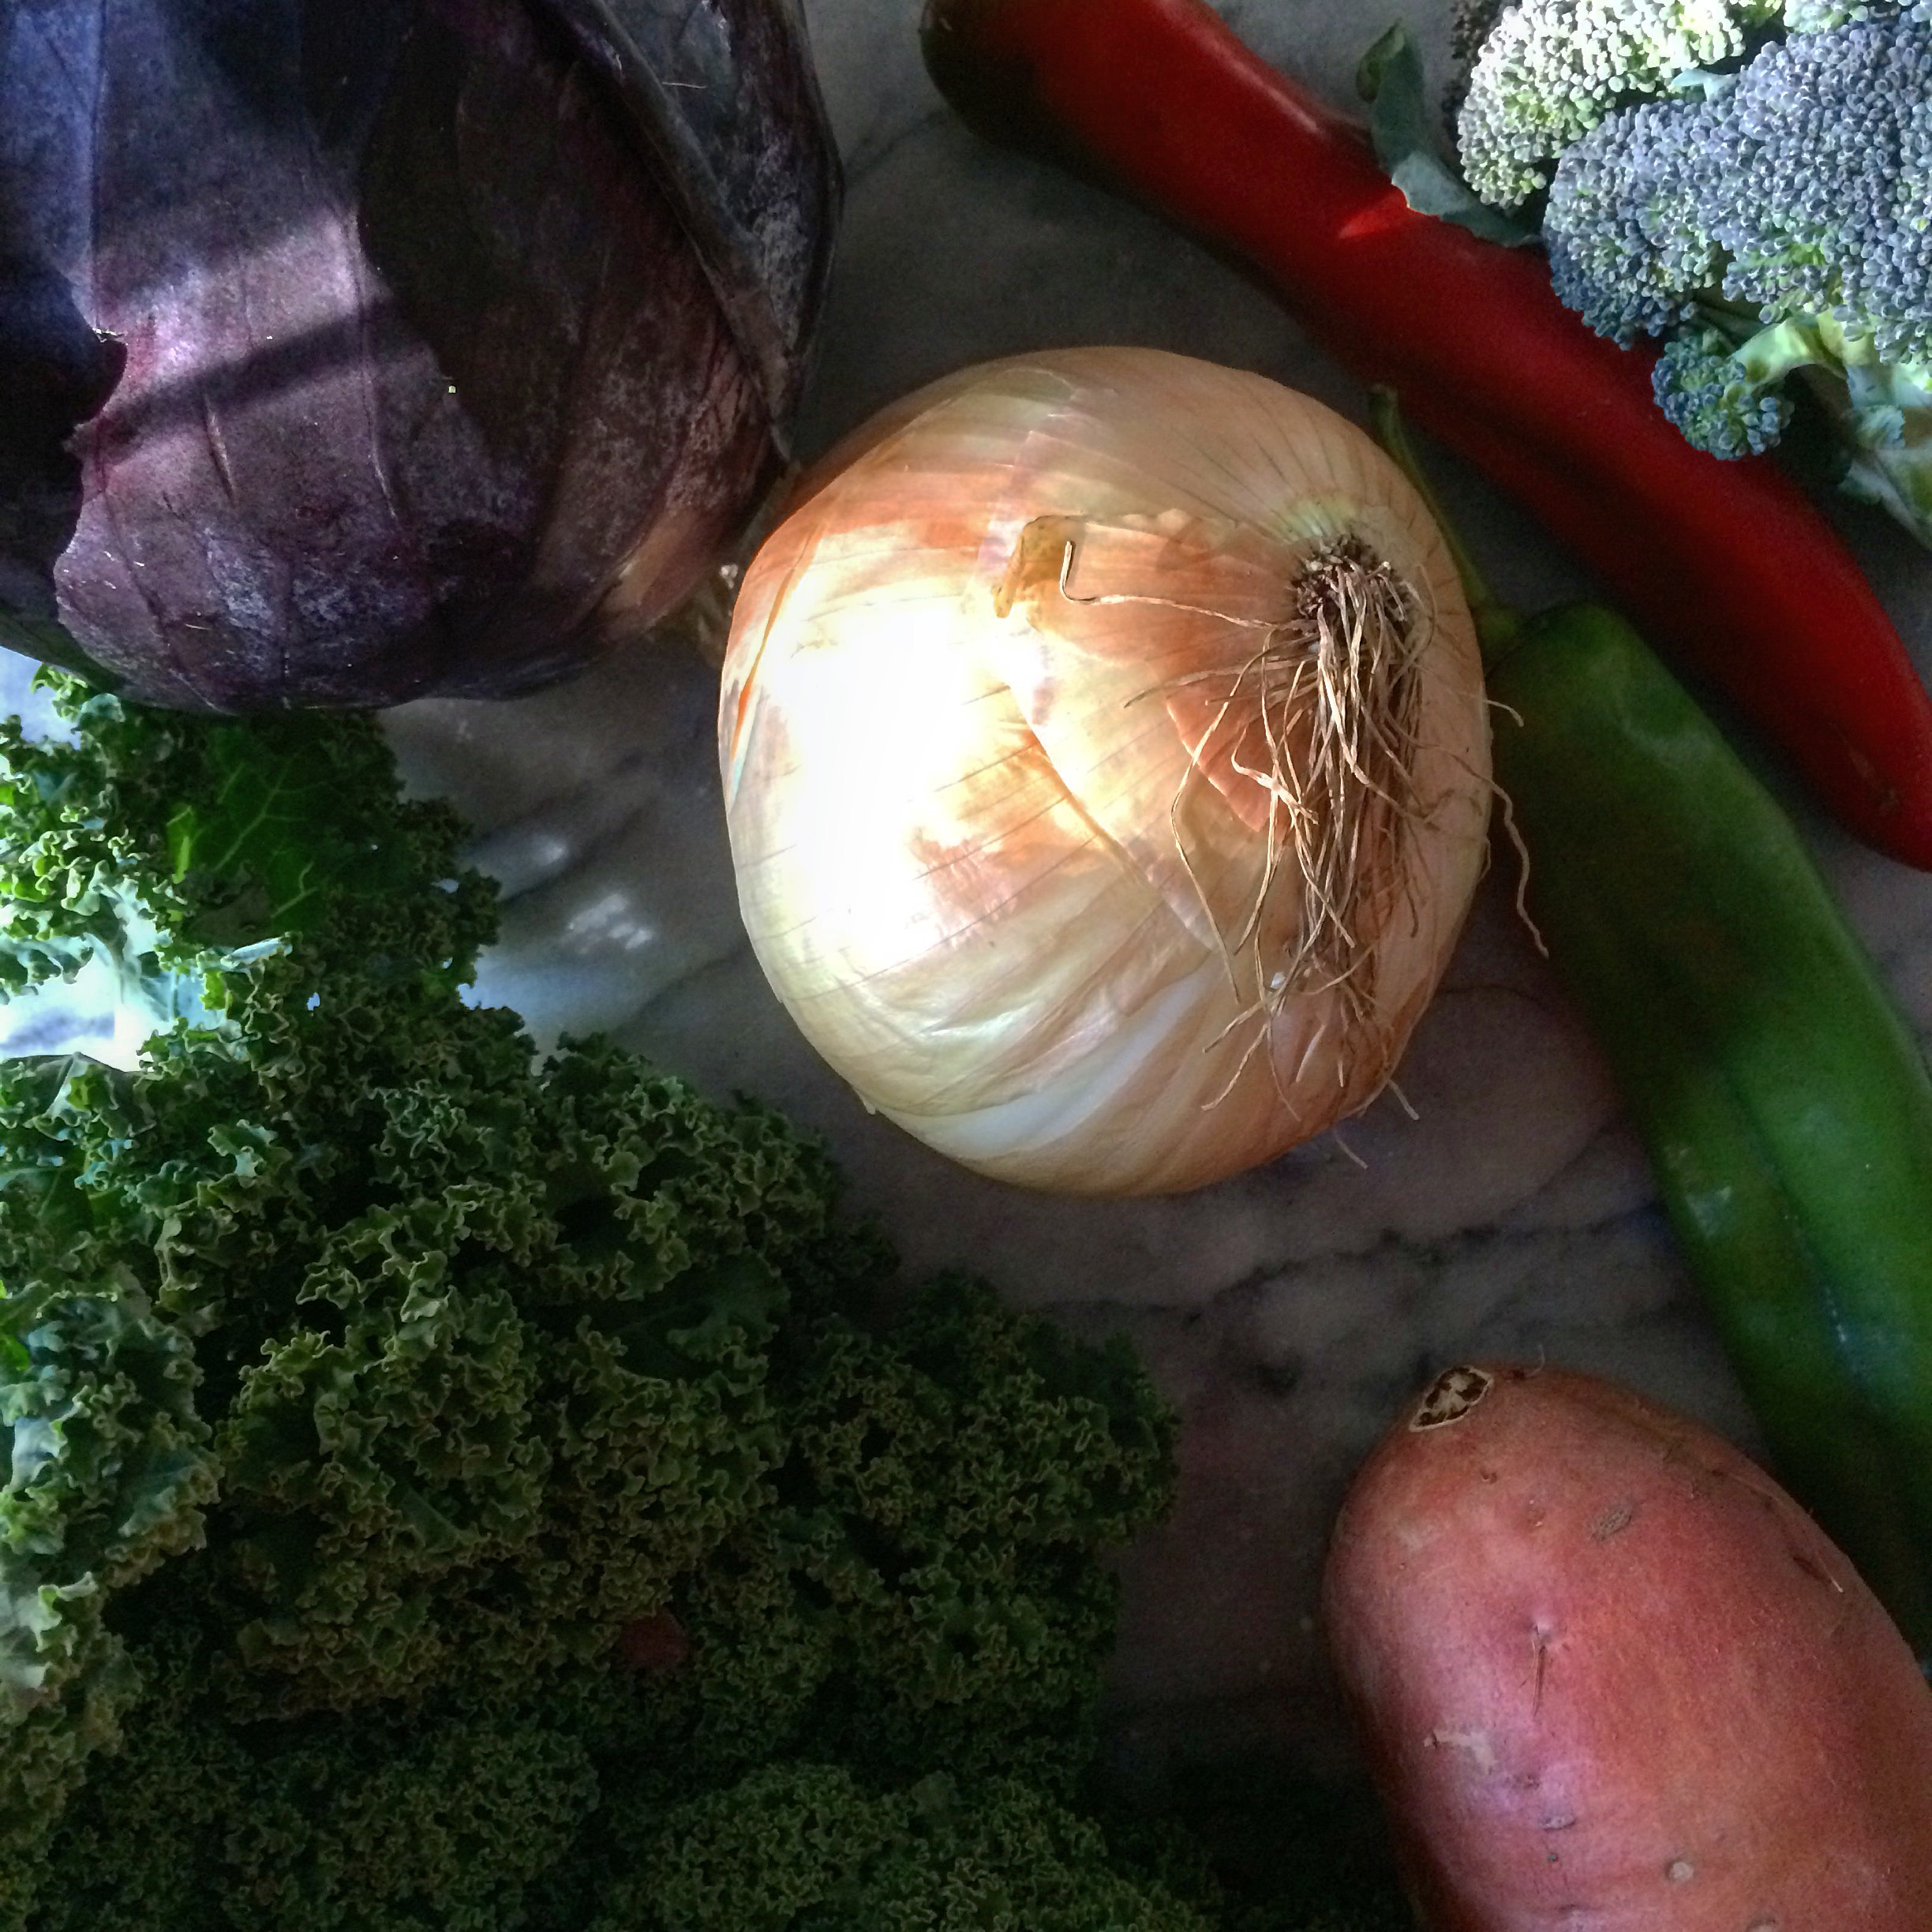 Some organic, local, super fresh veggies from the CSA I won at work!